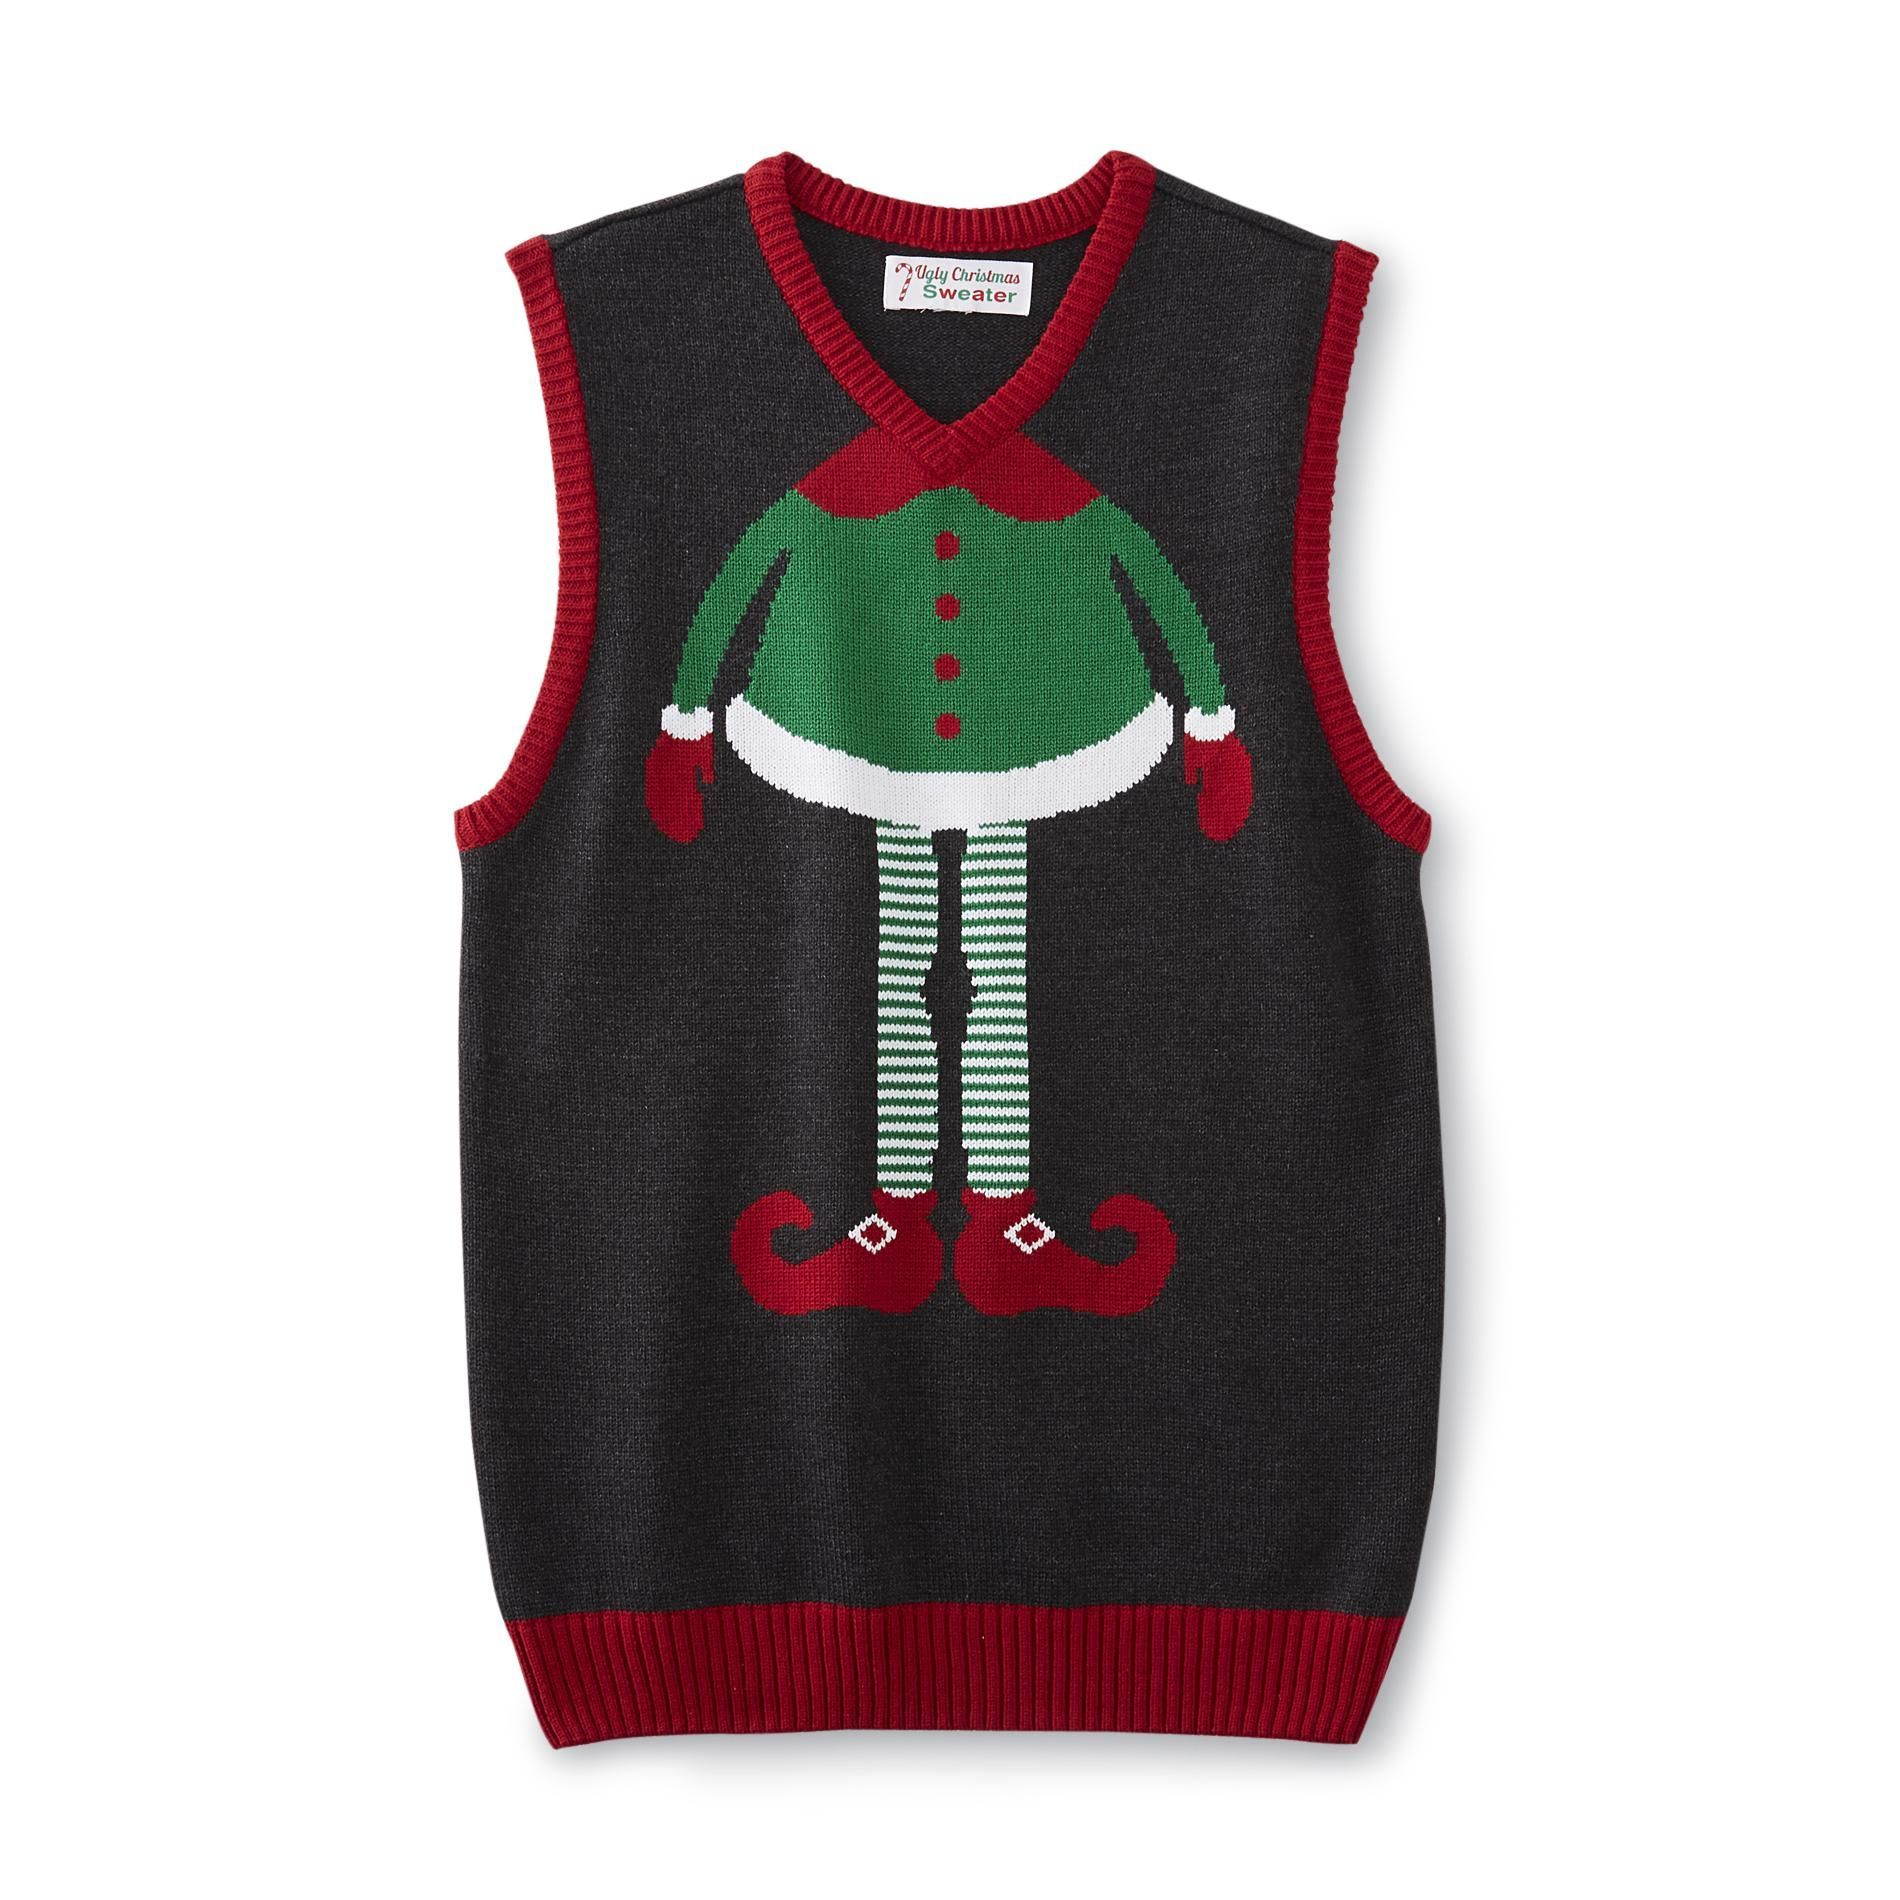 Mens Ugly Christmas Sweater Vest Sweater Vests Pinterest Ugly